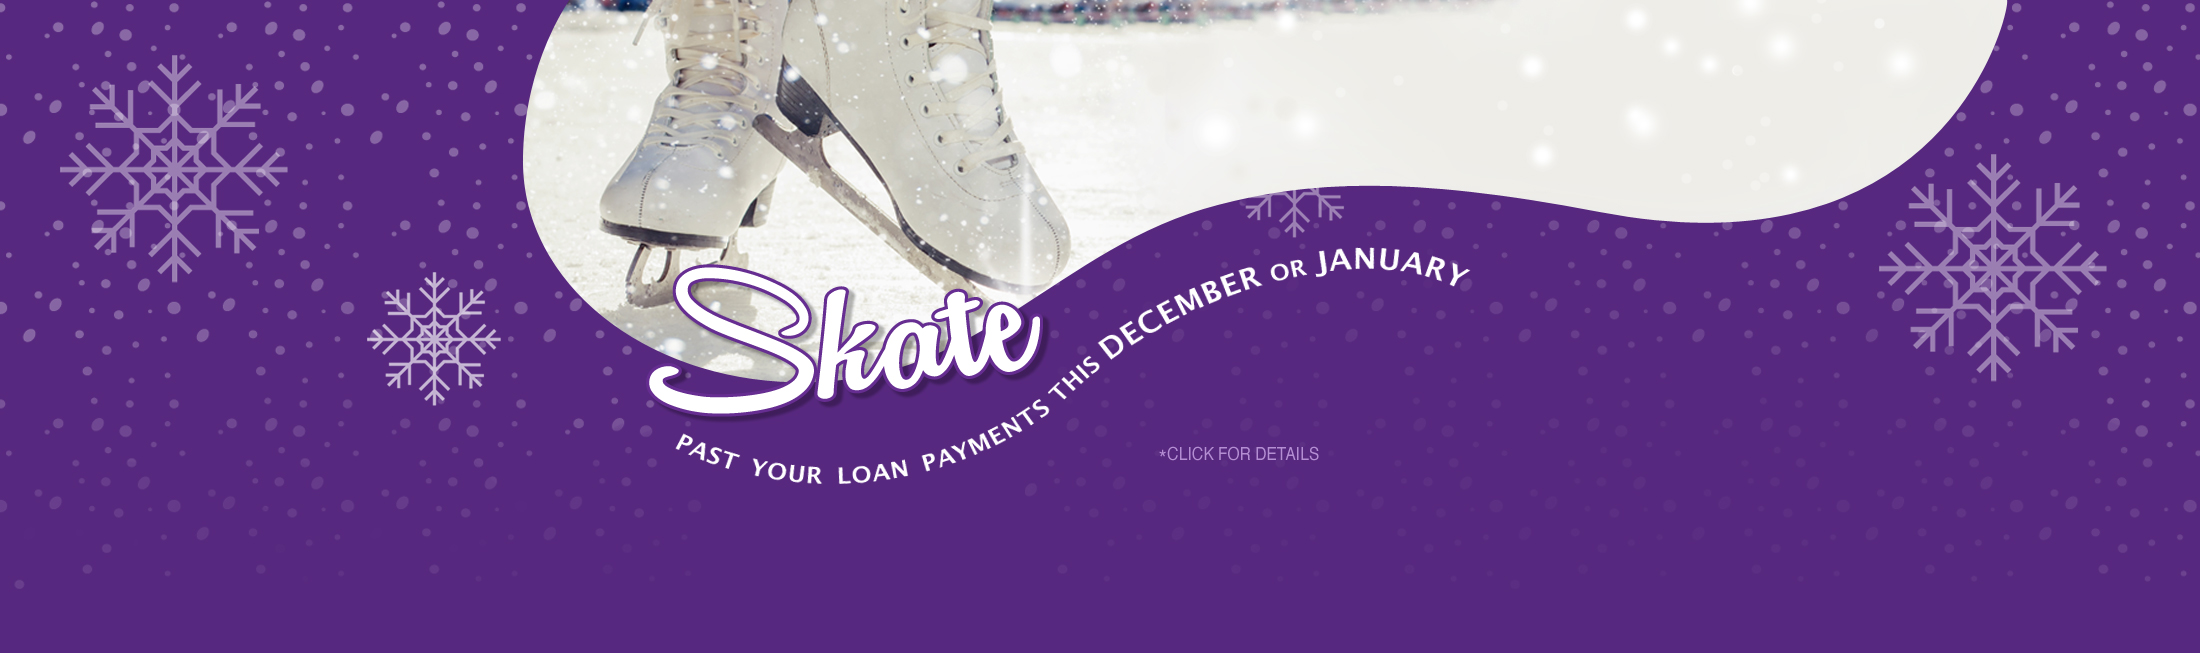 Skate Past Your Loan Payment 2019-2020 Winter Skip a Pay